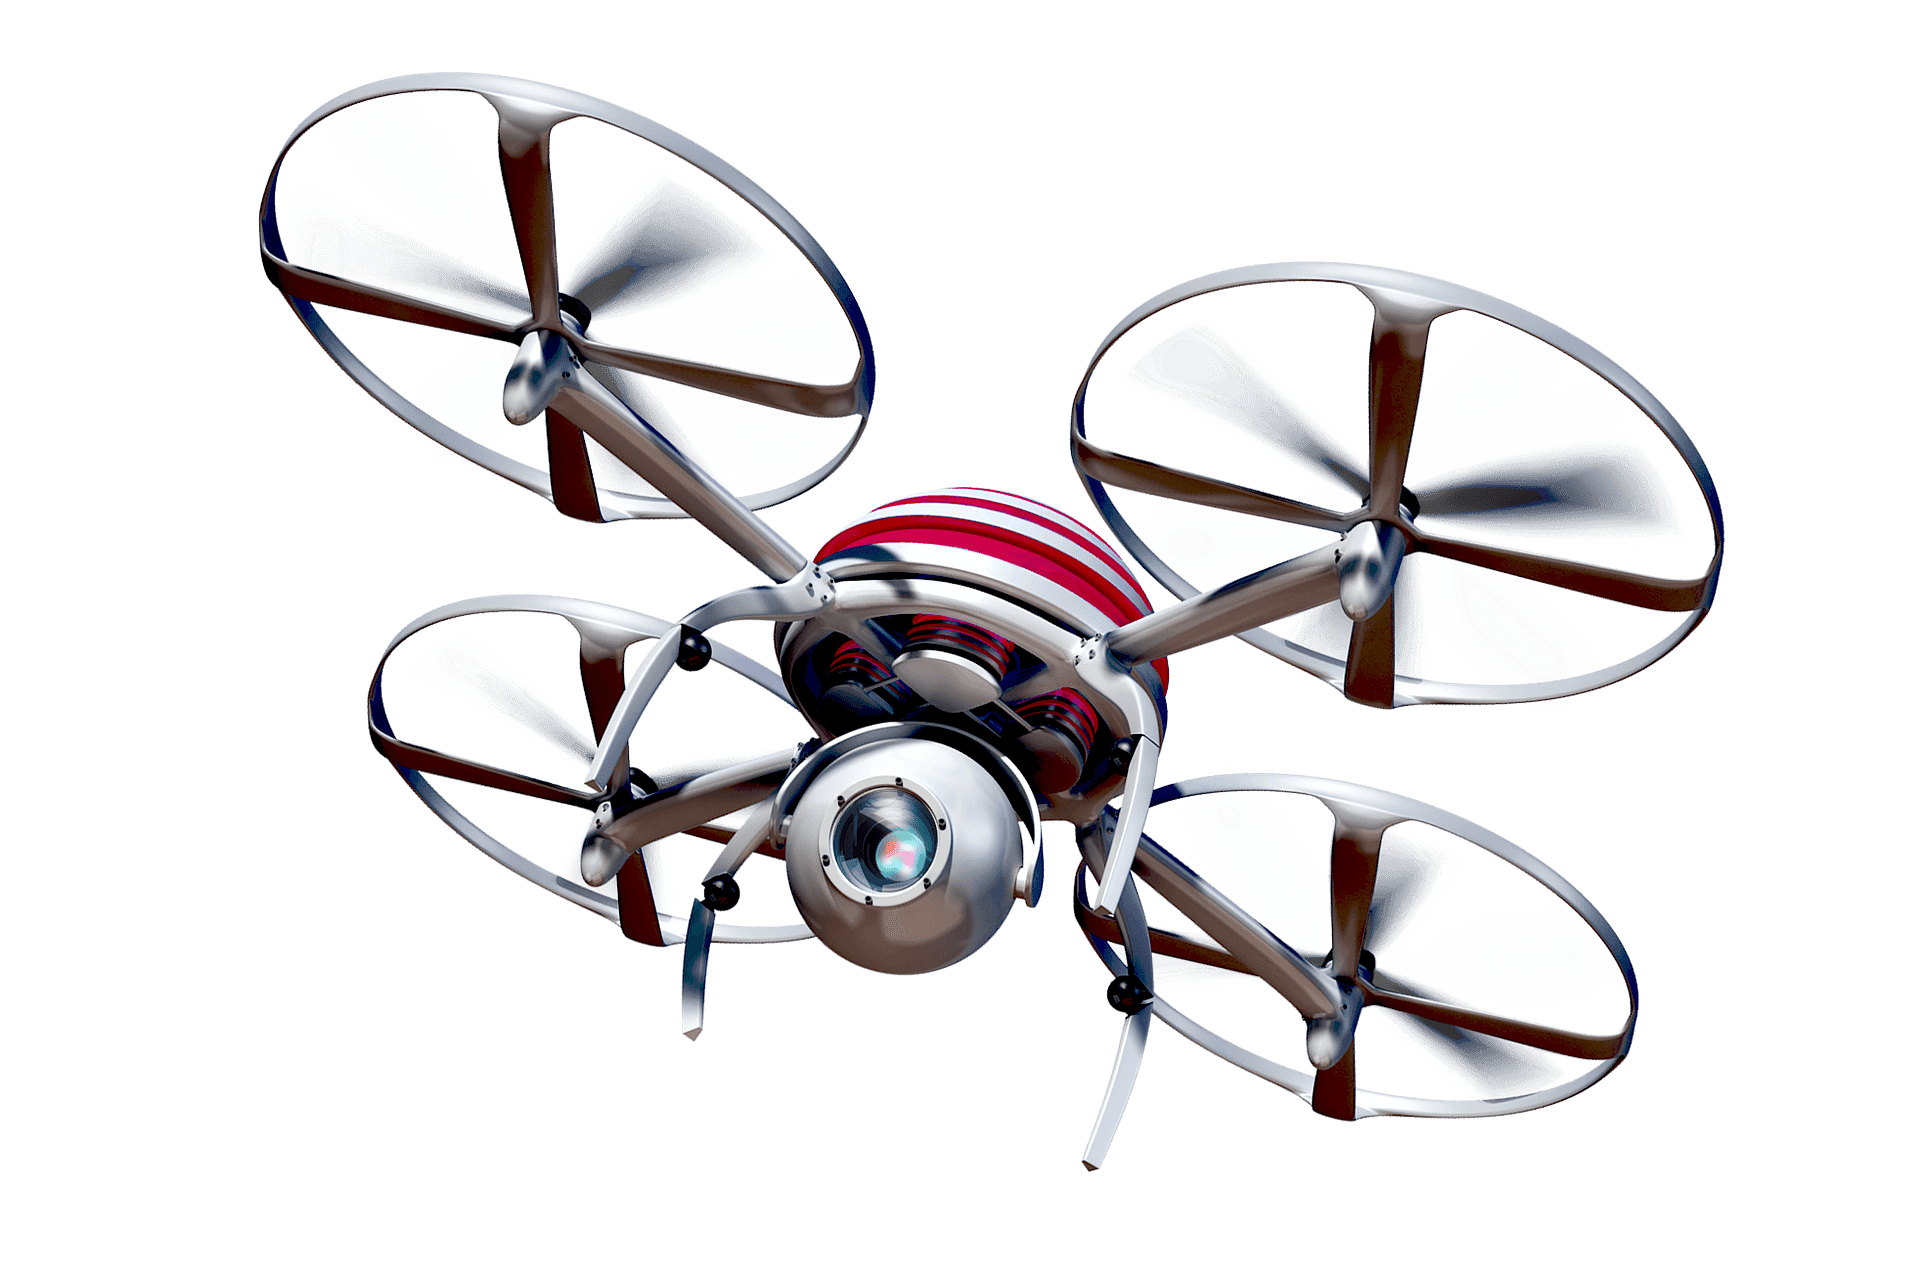 content/fr-fr/images/repository/isc/2020/a-spy-drone-with-large-camera-lens.png